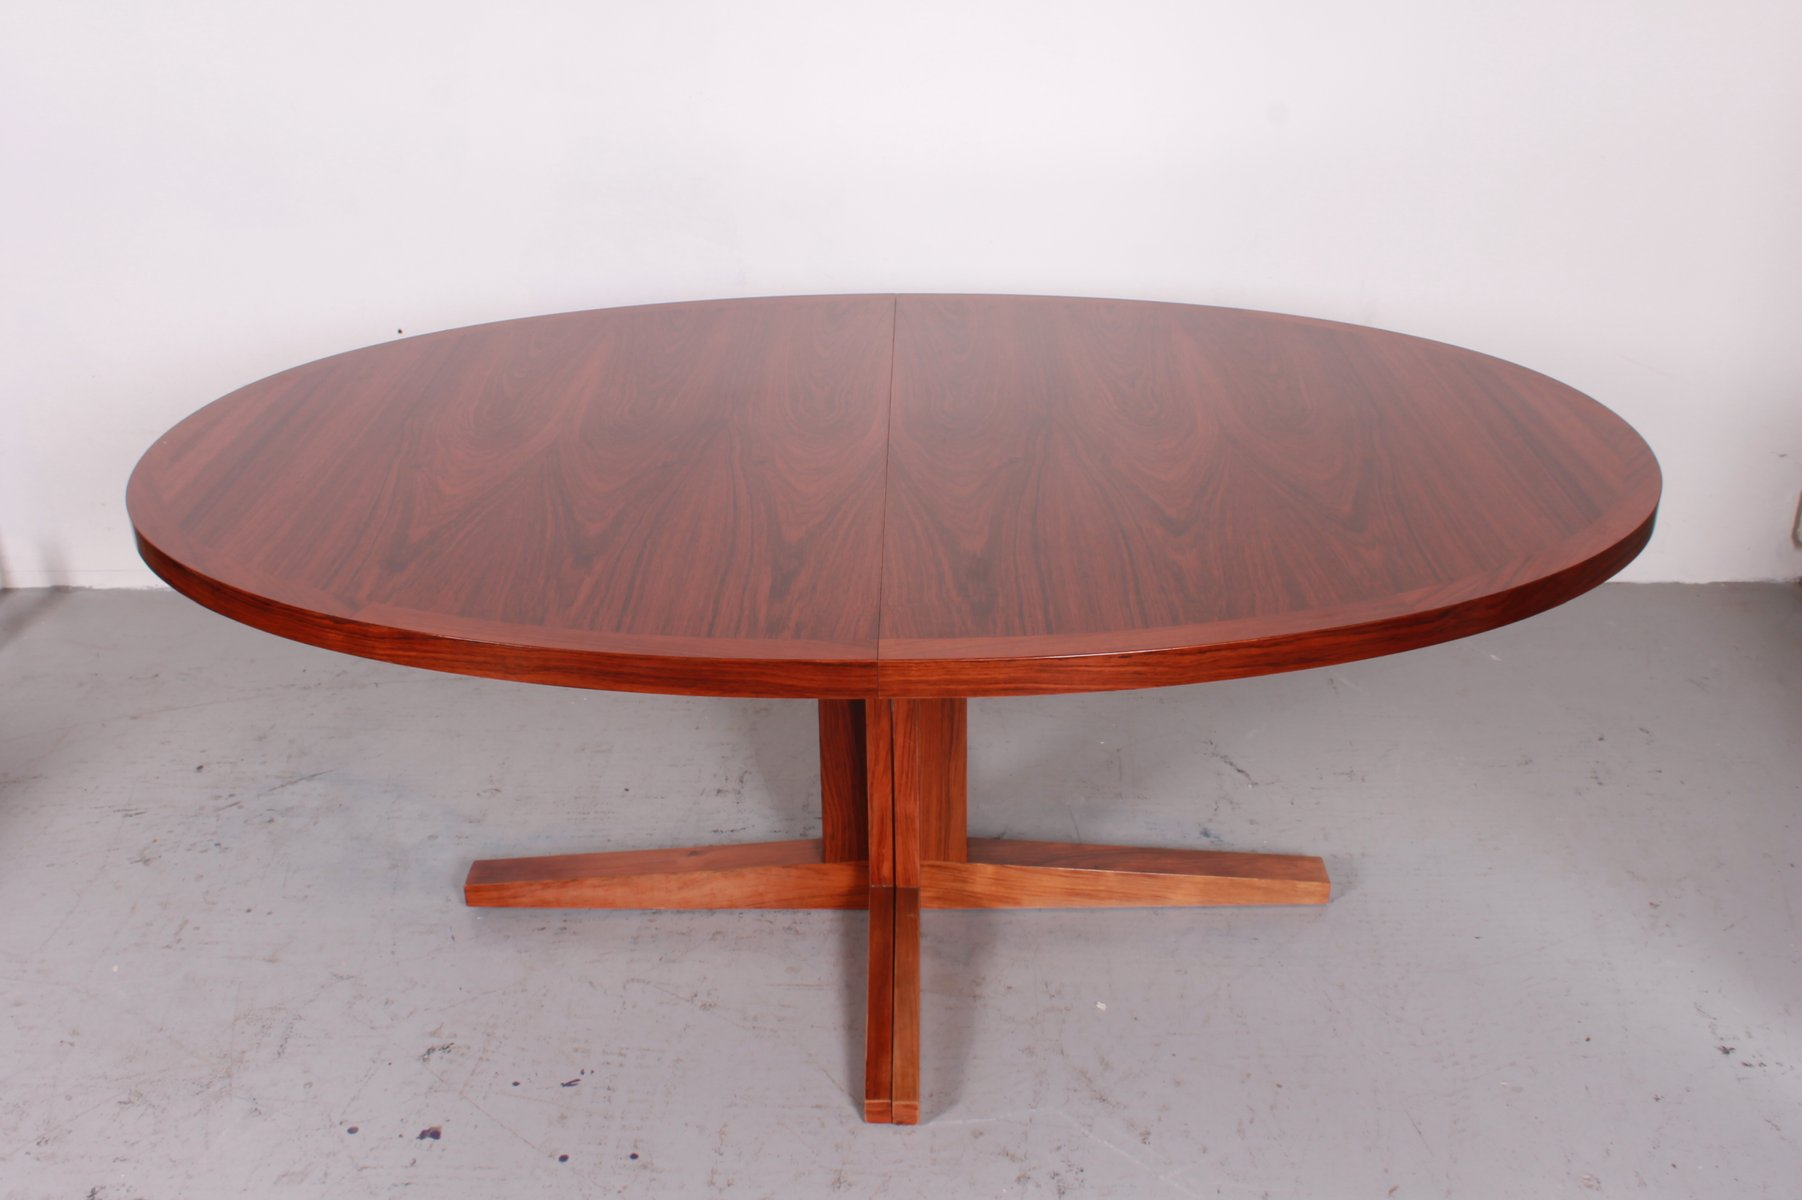 Vintage extensible dining table from dyrlund for sale at for Table exterieure extensible